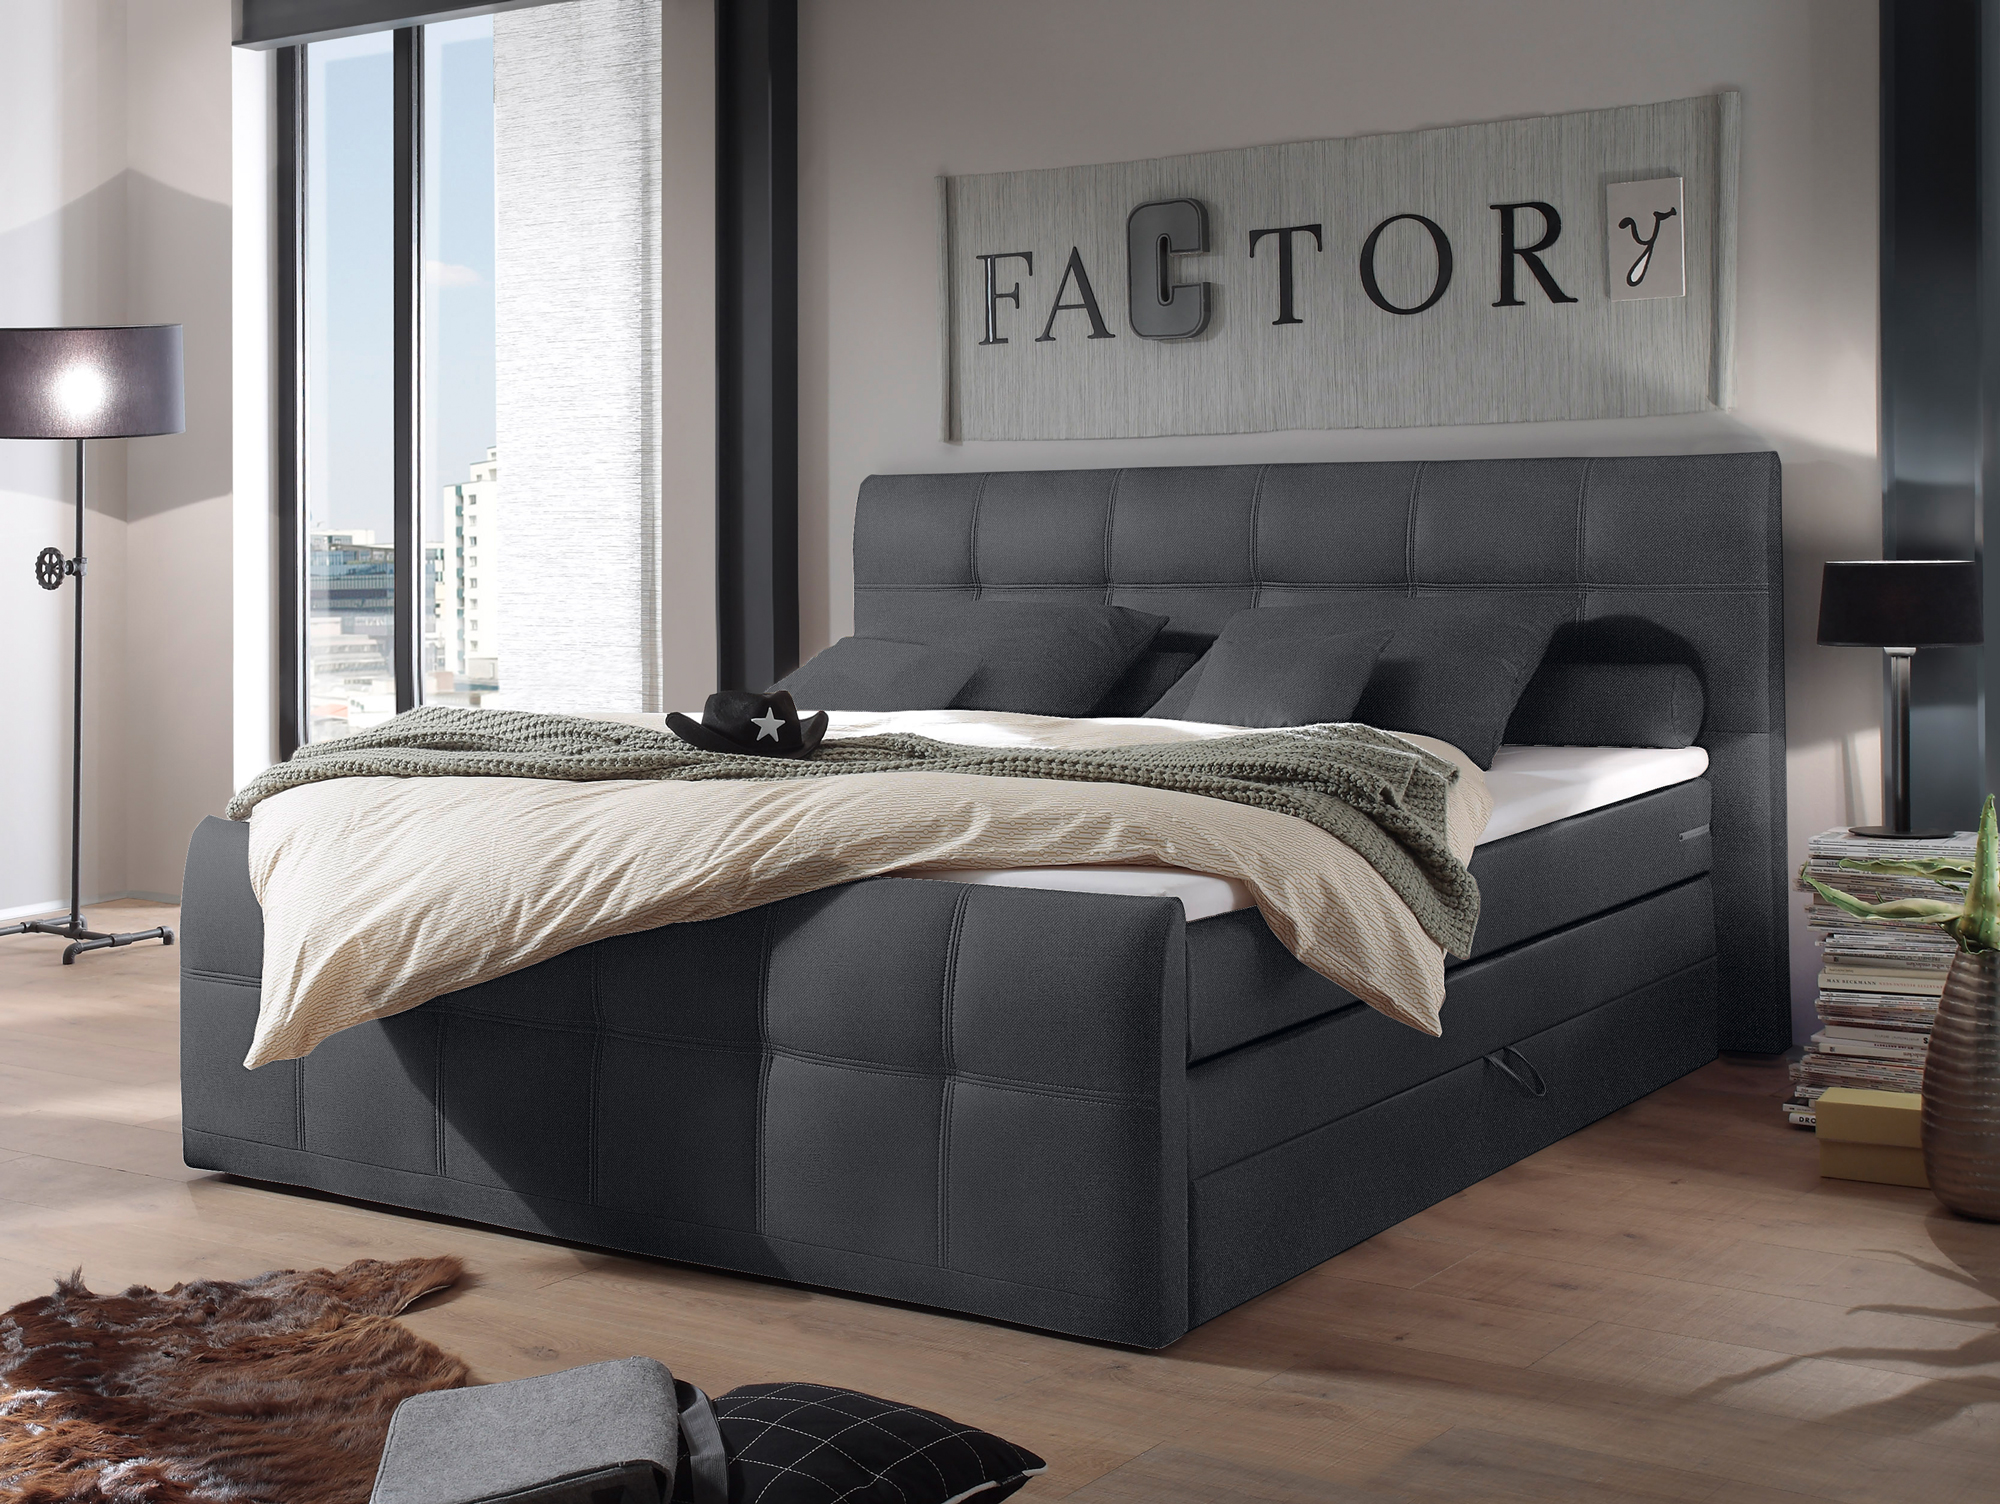 samara boxspringbett integrierter bettkasten 180x200 cm anthrazit. Black Bedroom Furniture Sets. Home Design Ideas